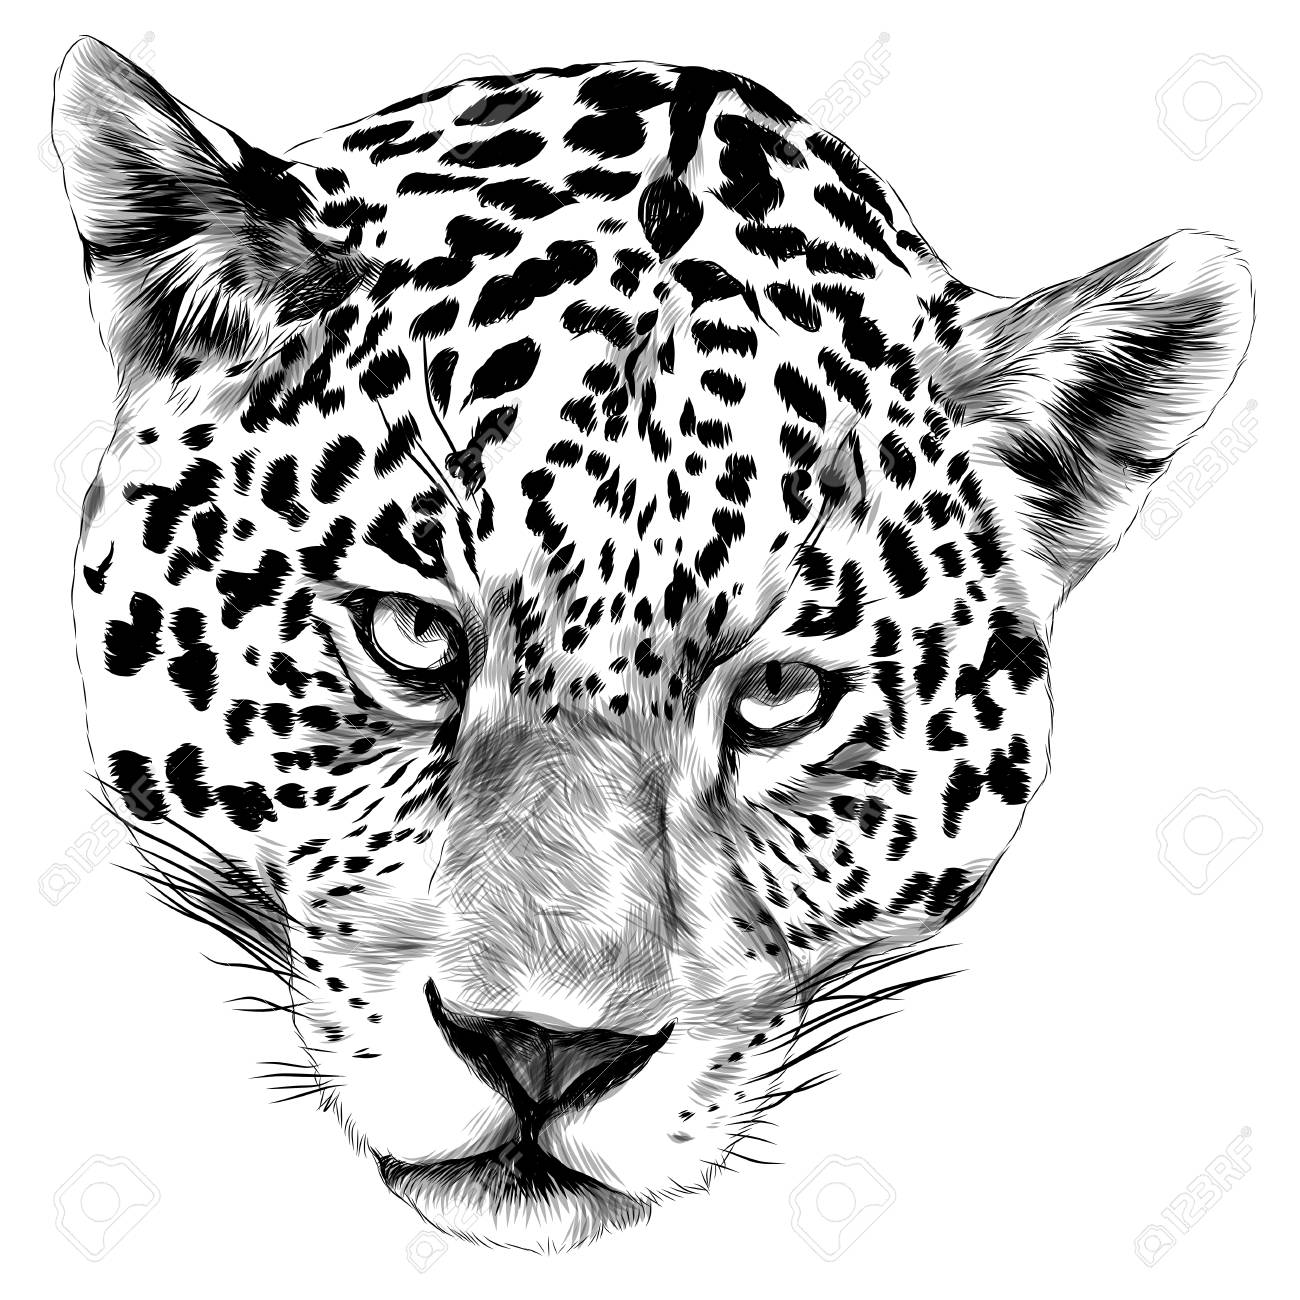 Jaguar Head Sketch Vector Graphics Monochrome Black And White Royalty Free Cliparts Vectors And Stock Illustration Image 91578843